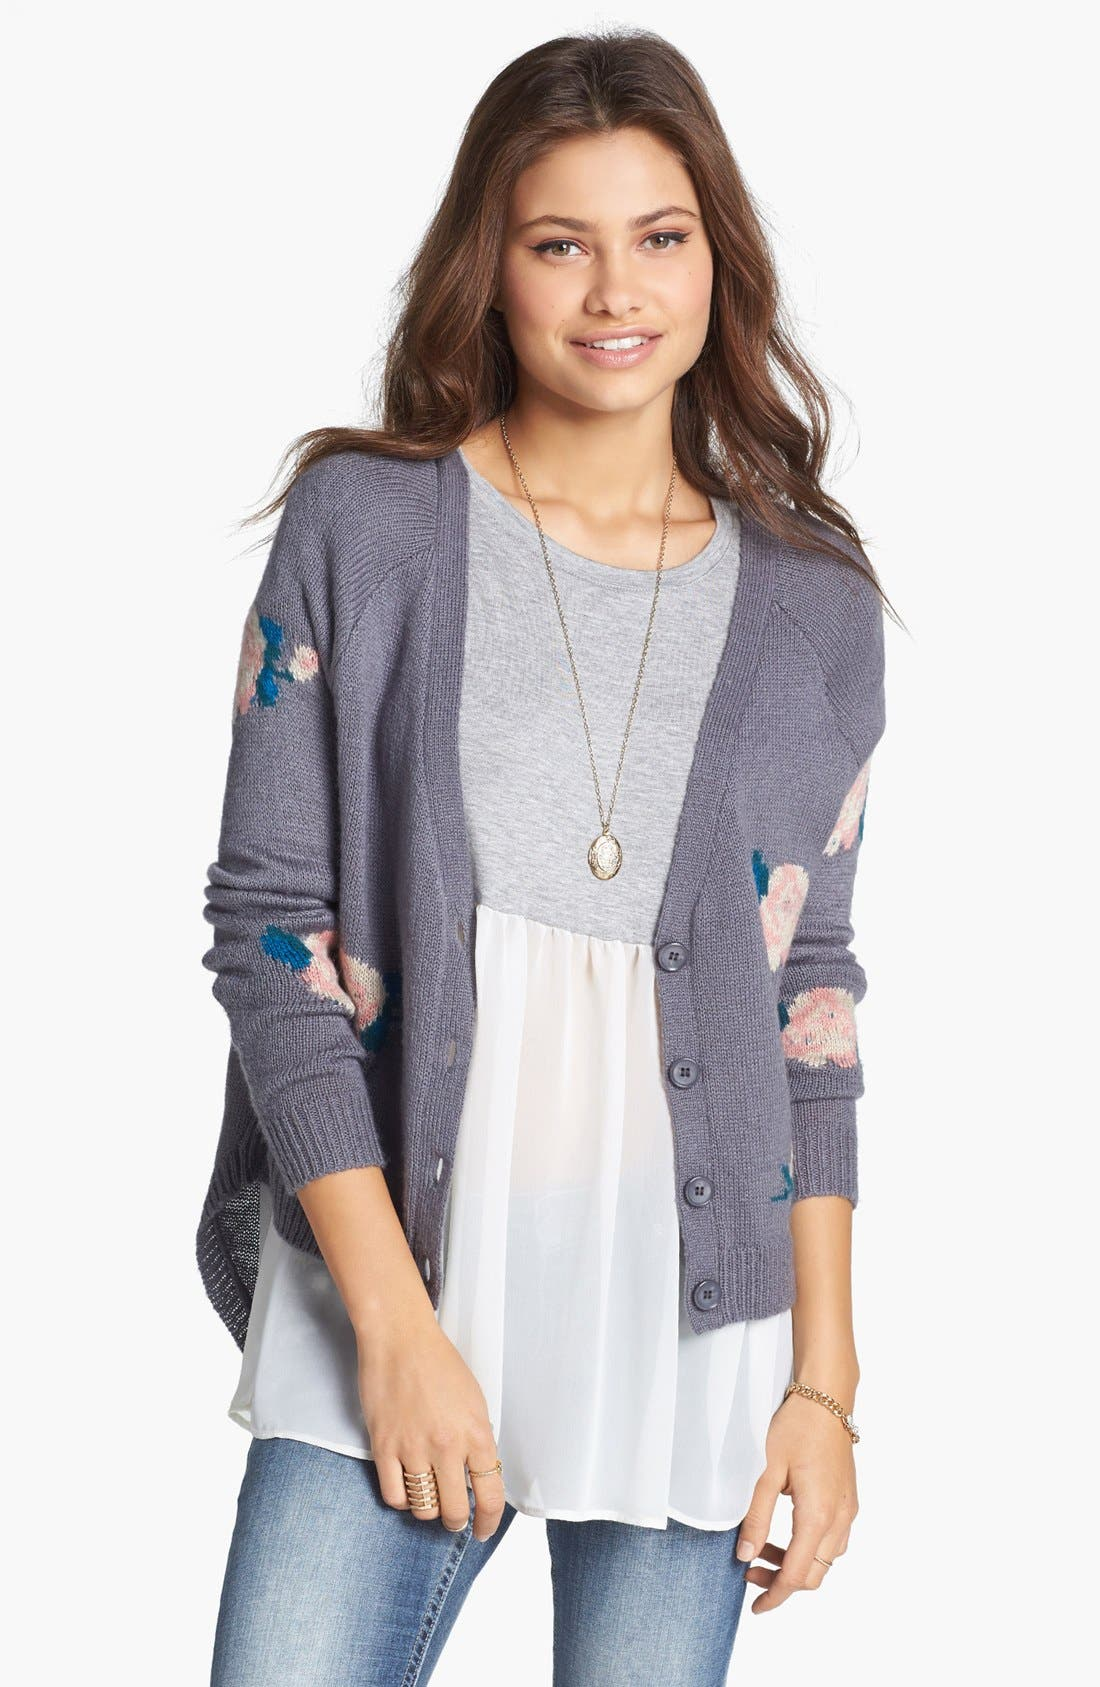 Alternate Image 1 Selected - Love By Design Tie Back Floral High/Low Cardigan (Juniors)